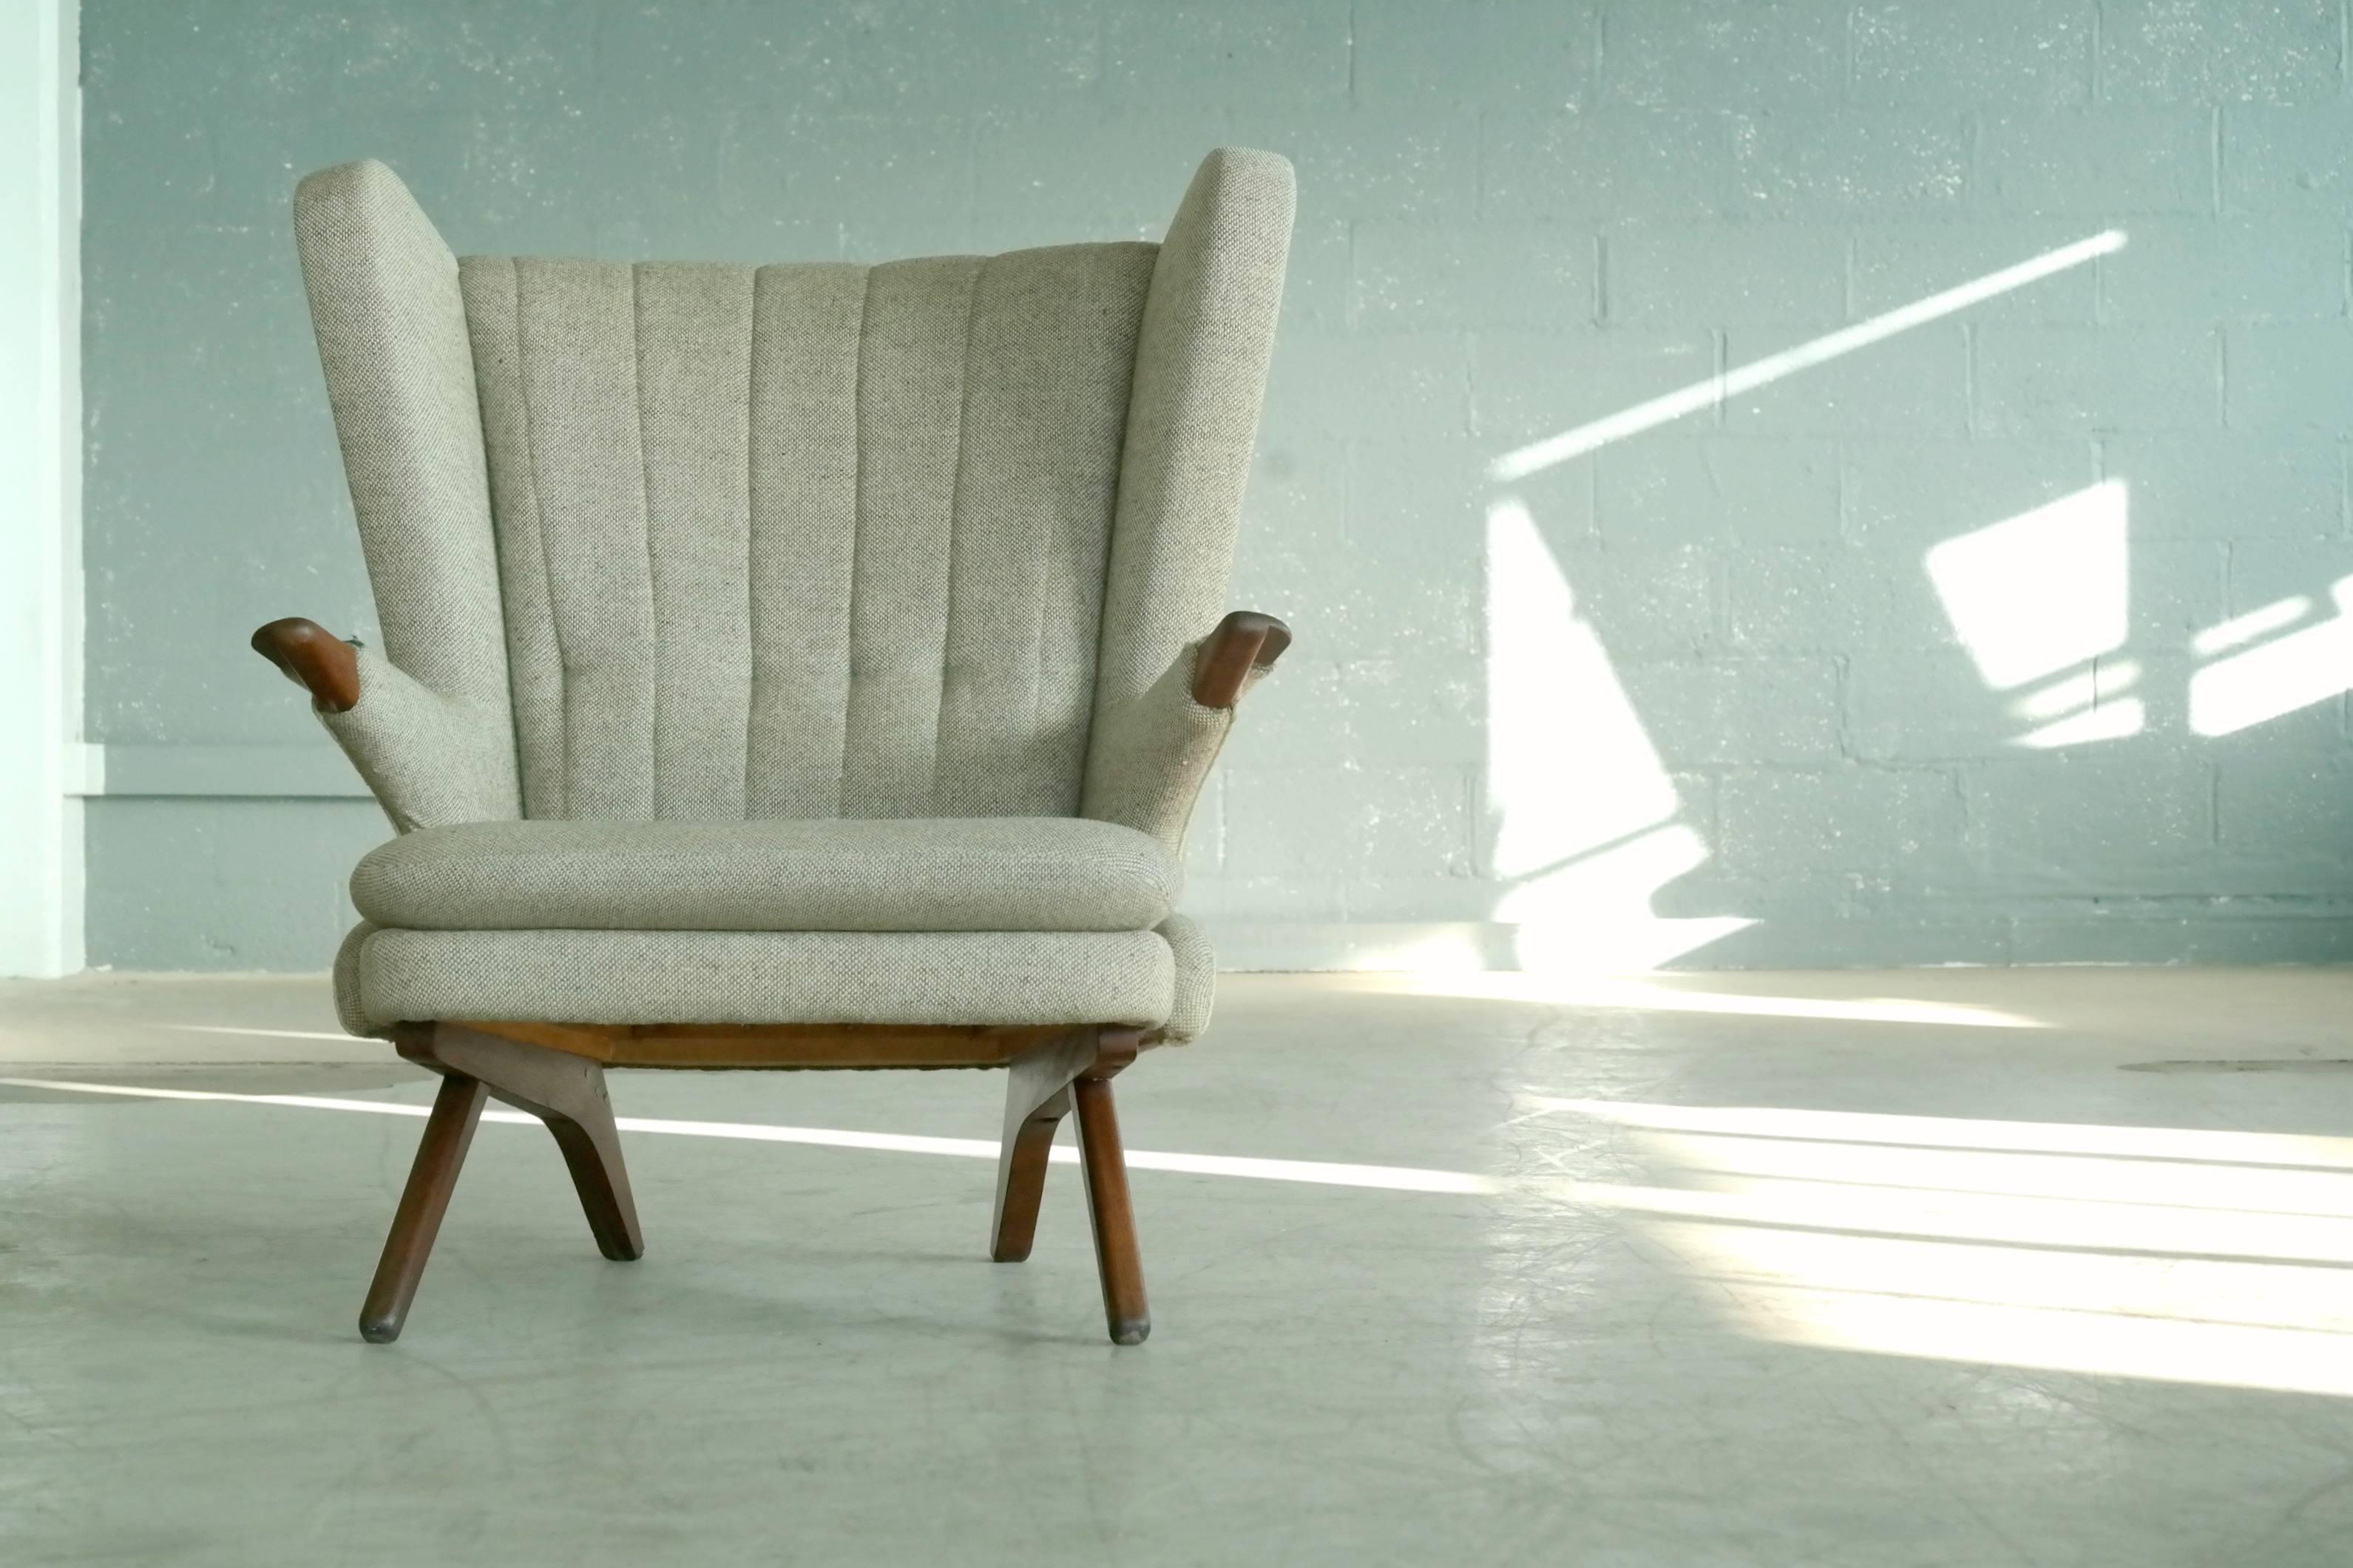 papa bear chair stamp original danish high back papa bear chair designed in the 1960s by svend skipper as model worldclass chair model 91 sven decaso